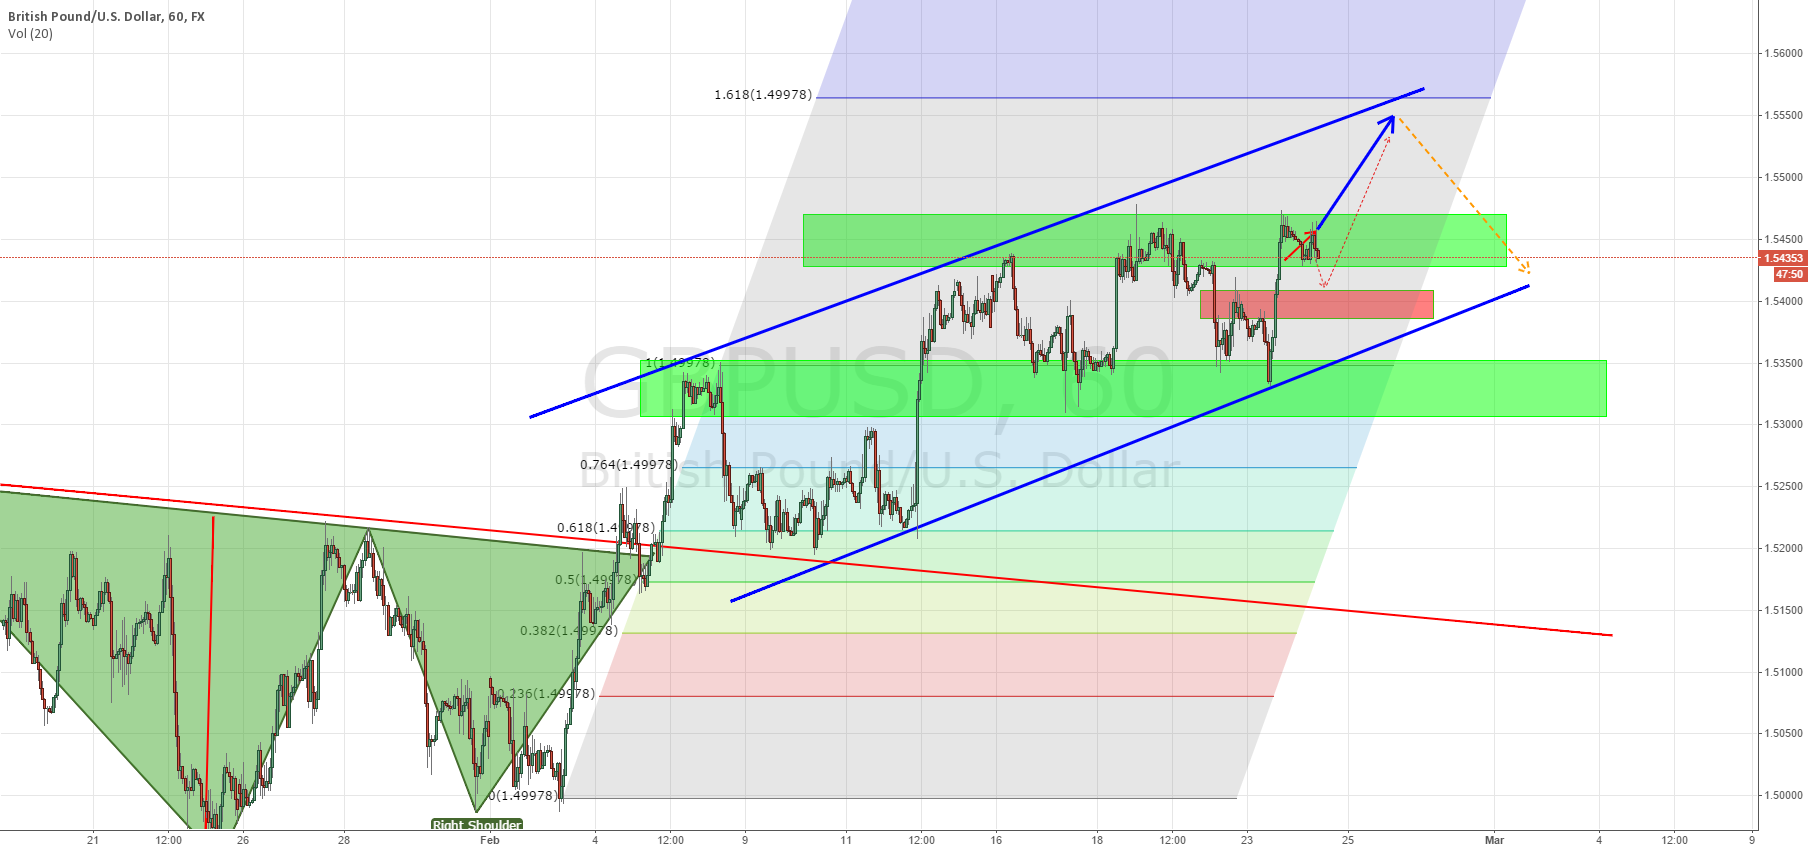 GBP/USD channel